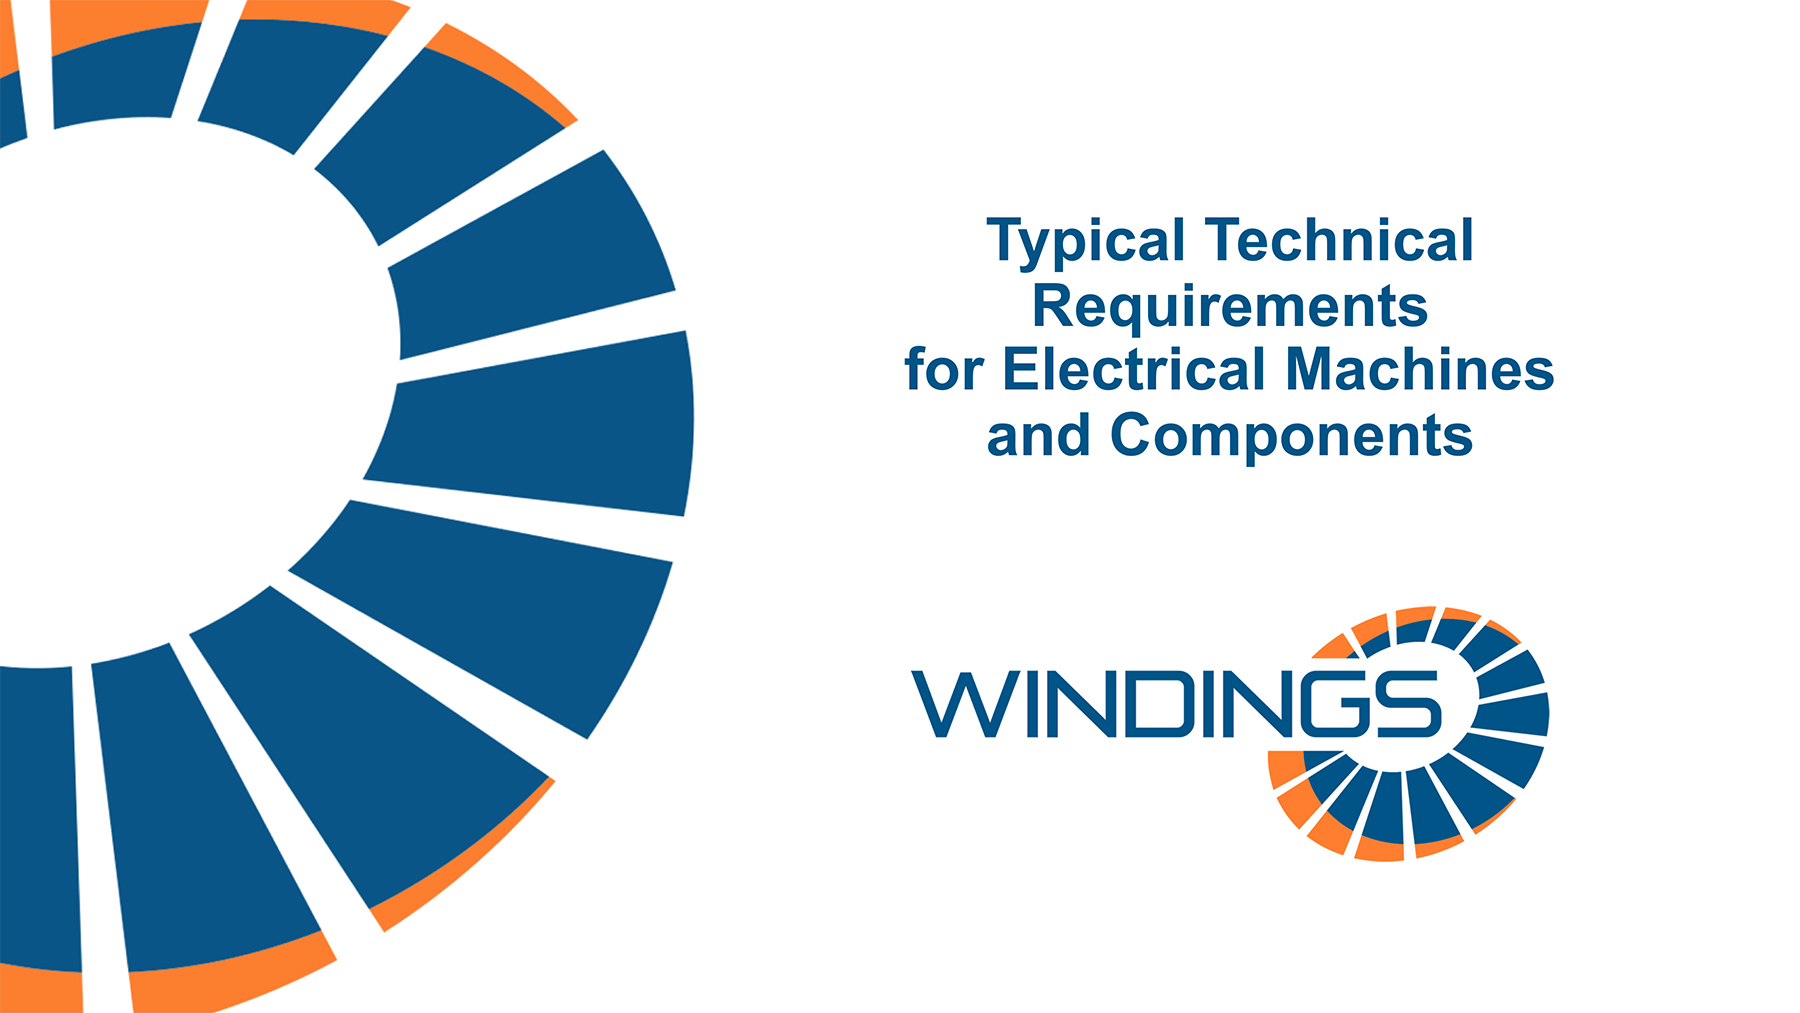 Typical Technical Requirements for Electrical Machines and Components